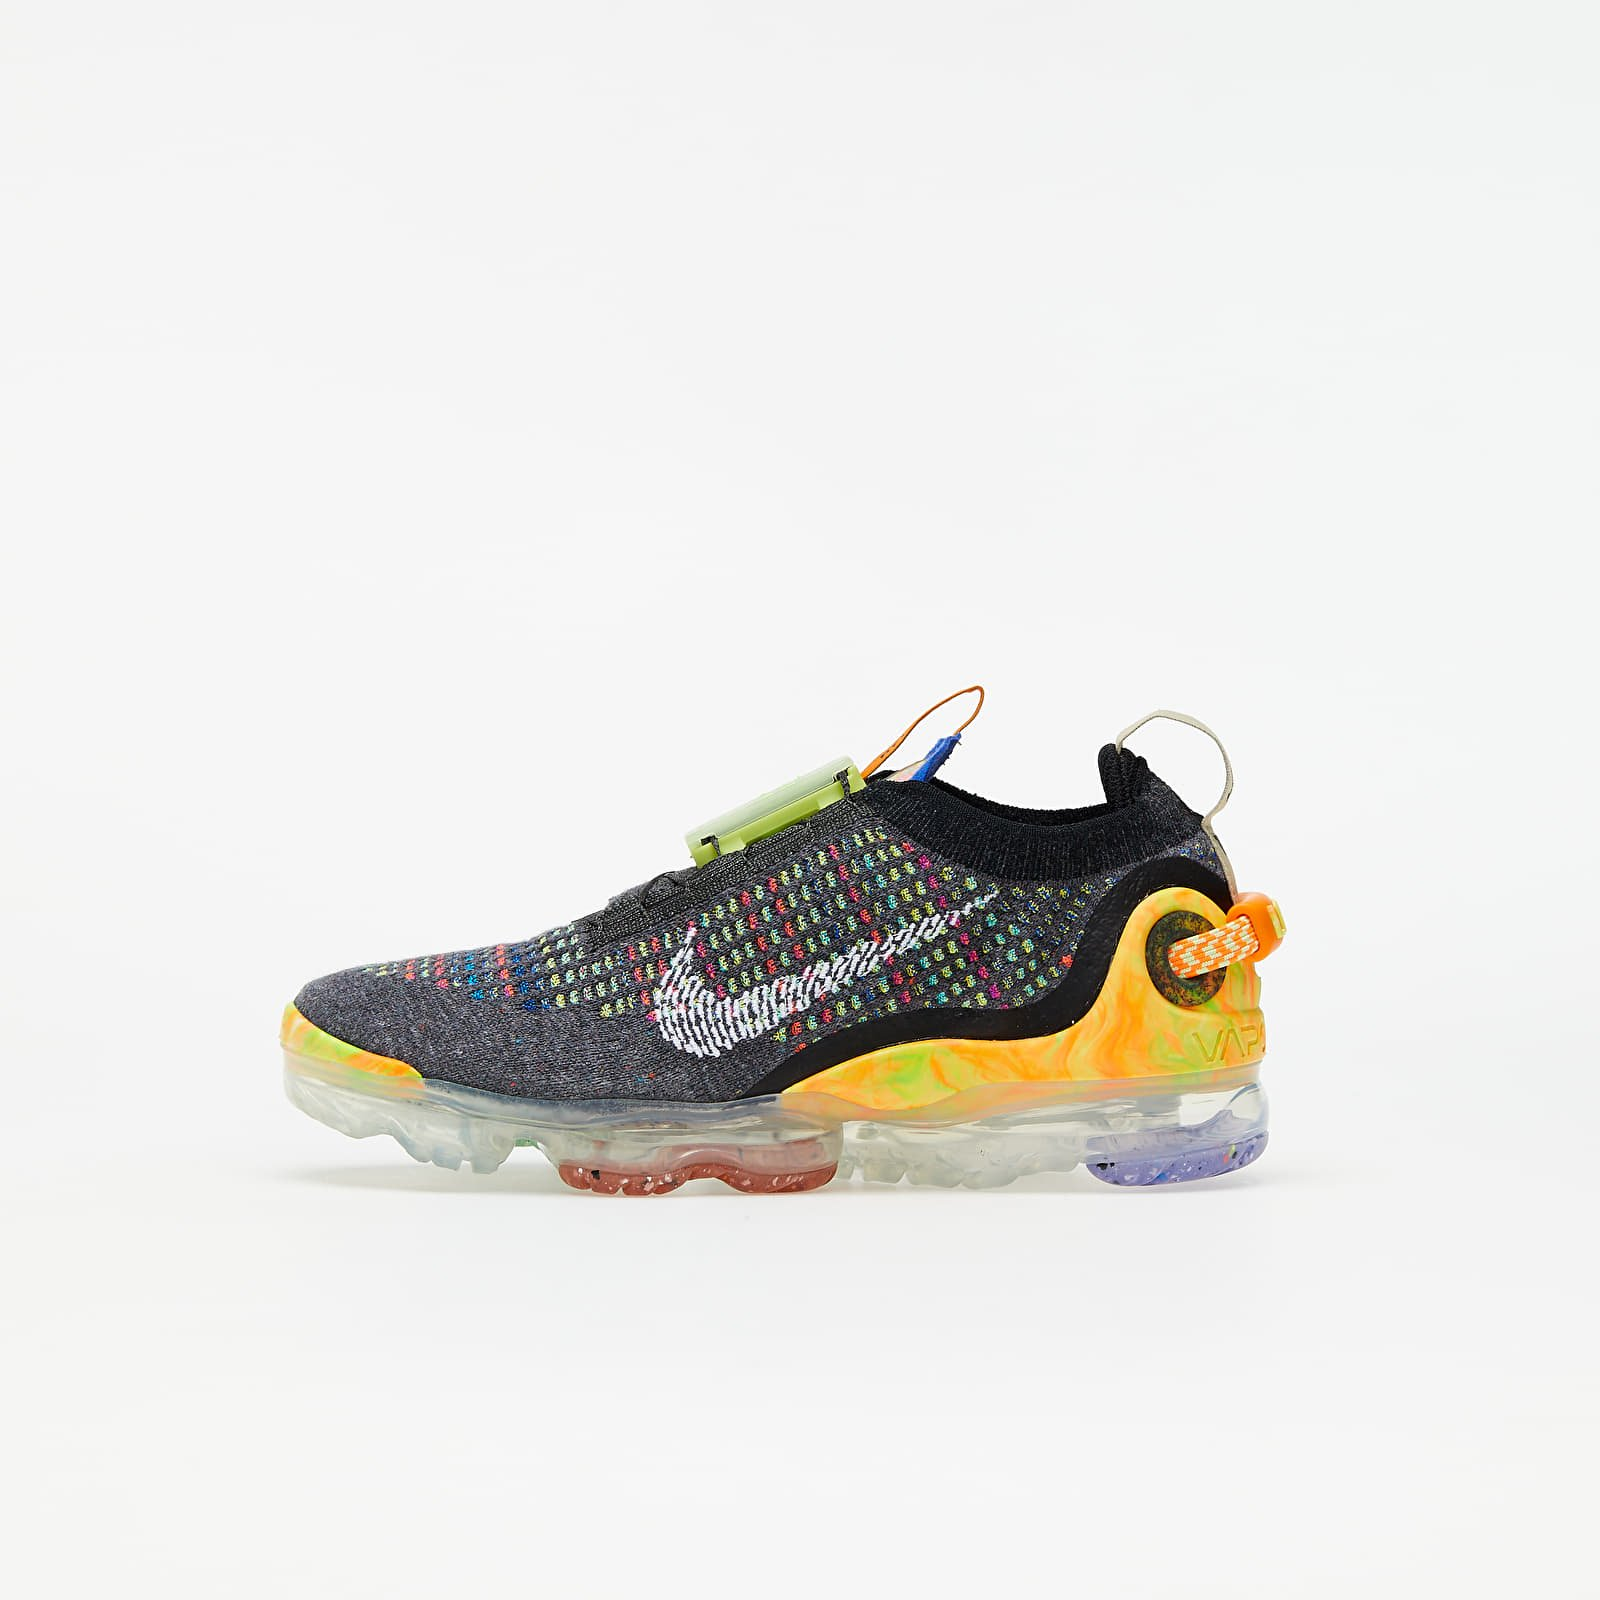 Chaussures et baskets enfants Nike Air VaporMax 2020 FK (GS) Iron Grey/ White-Multi-Color